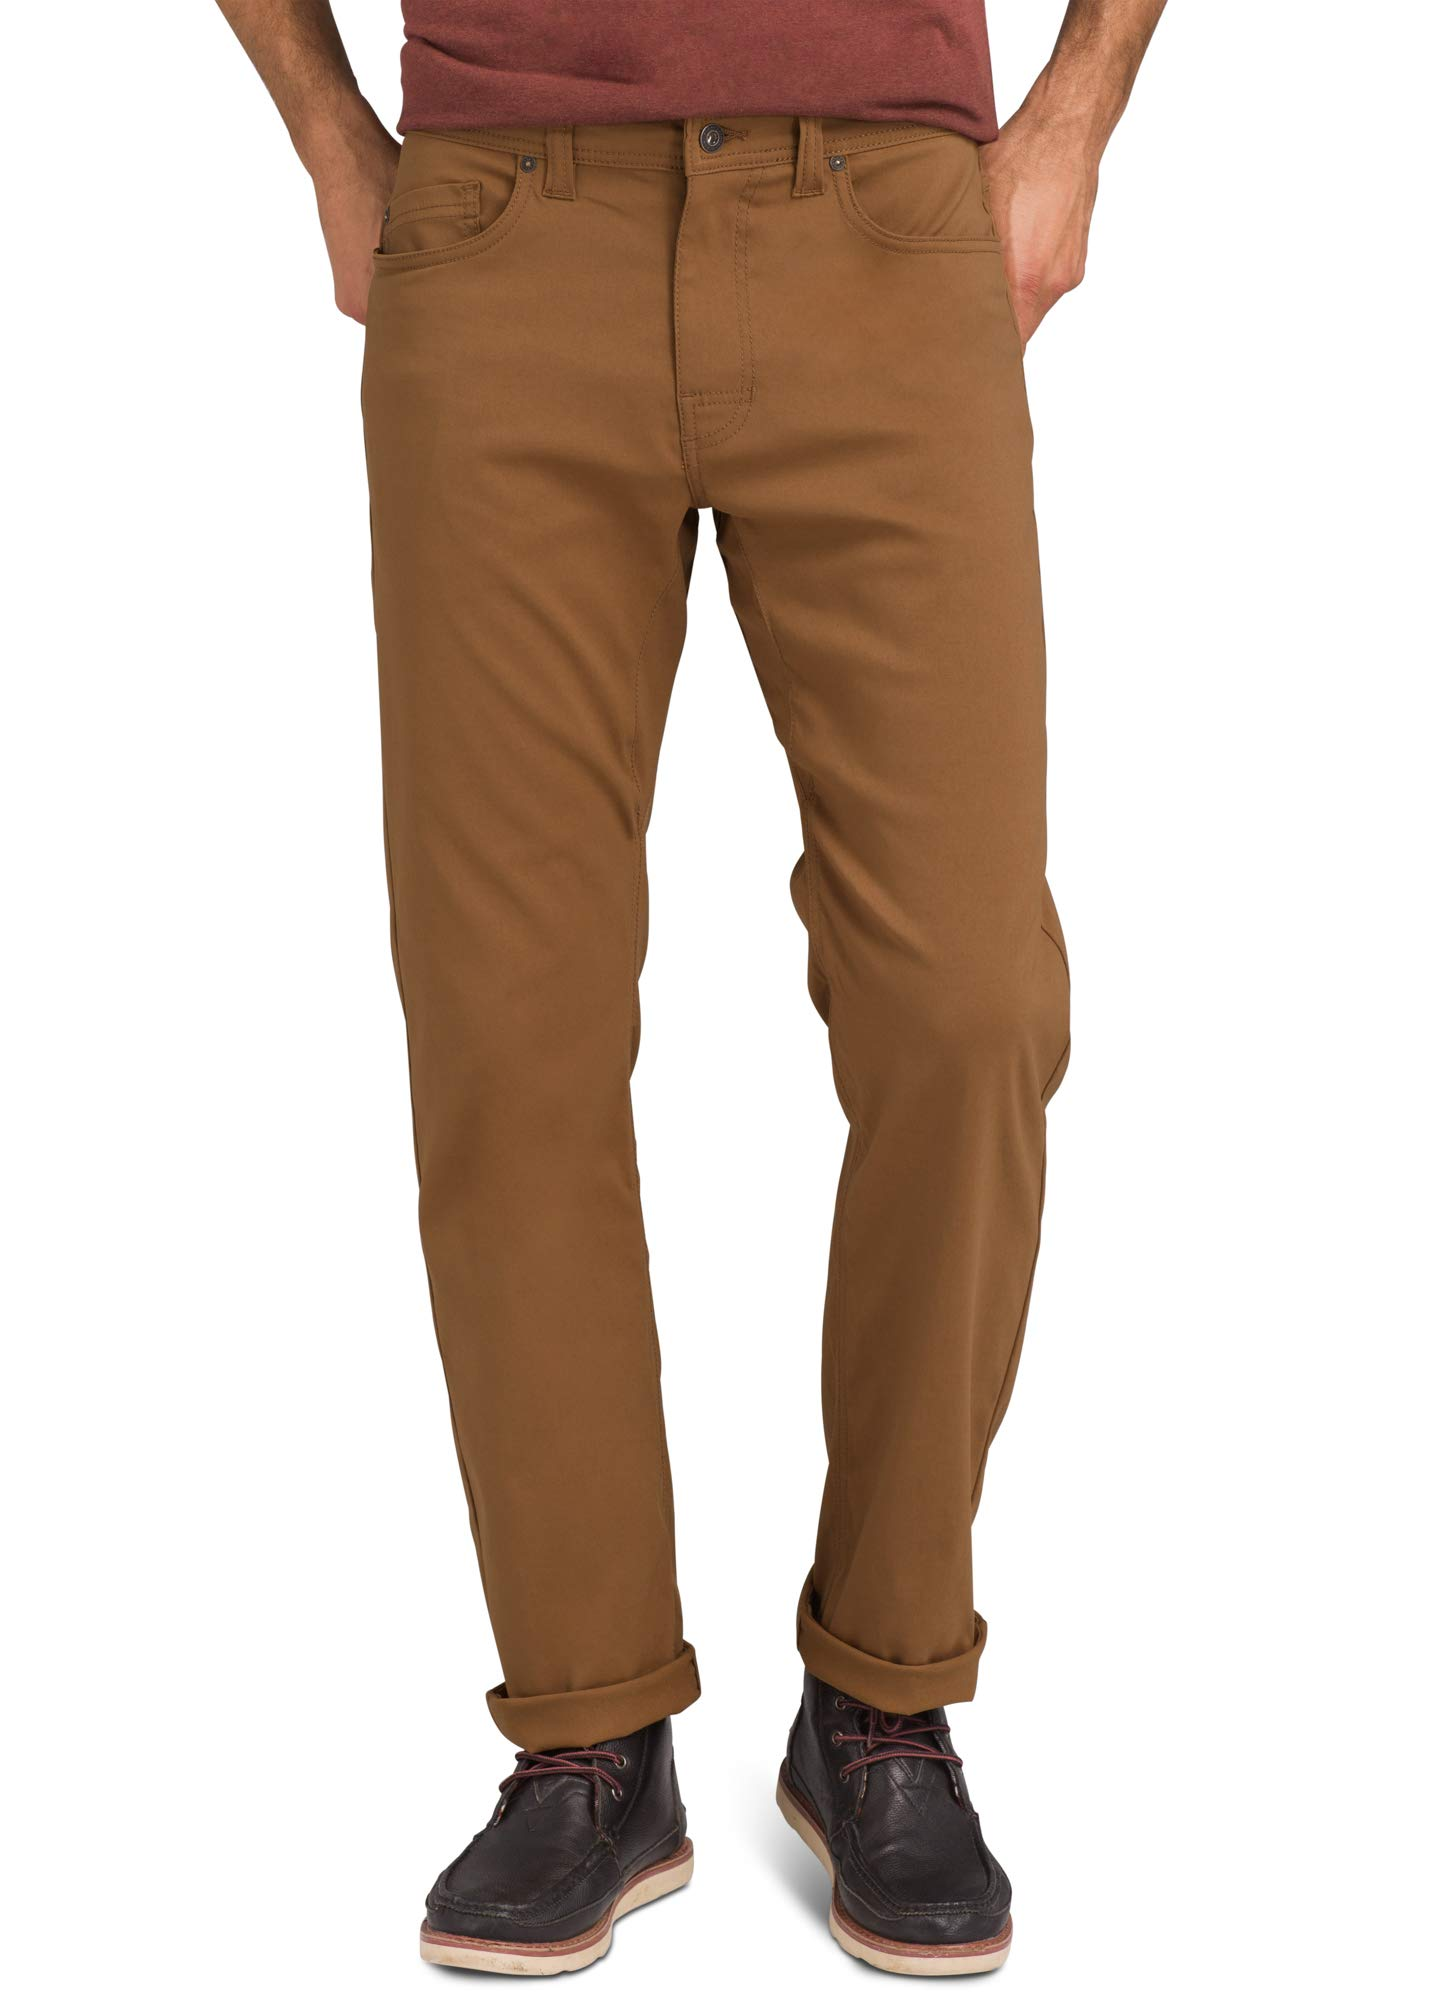 prAna - Men's Brion Lightweight, Breathable, Wrinkle-Resistant Stretch Pants for Hiking and Everyday Wear, 32'' Inseam, Sepia, 38 by prAna